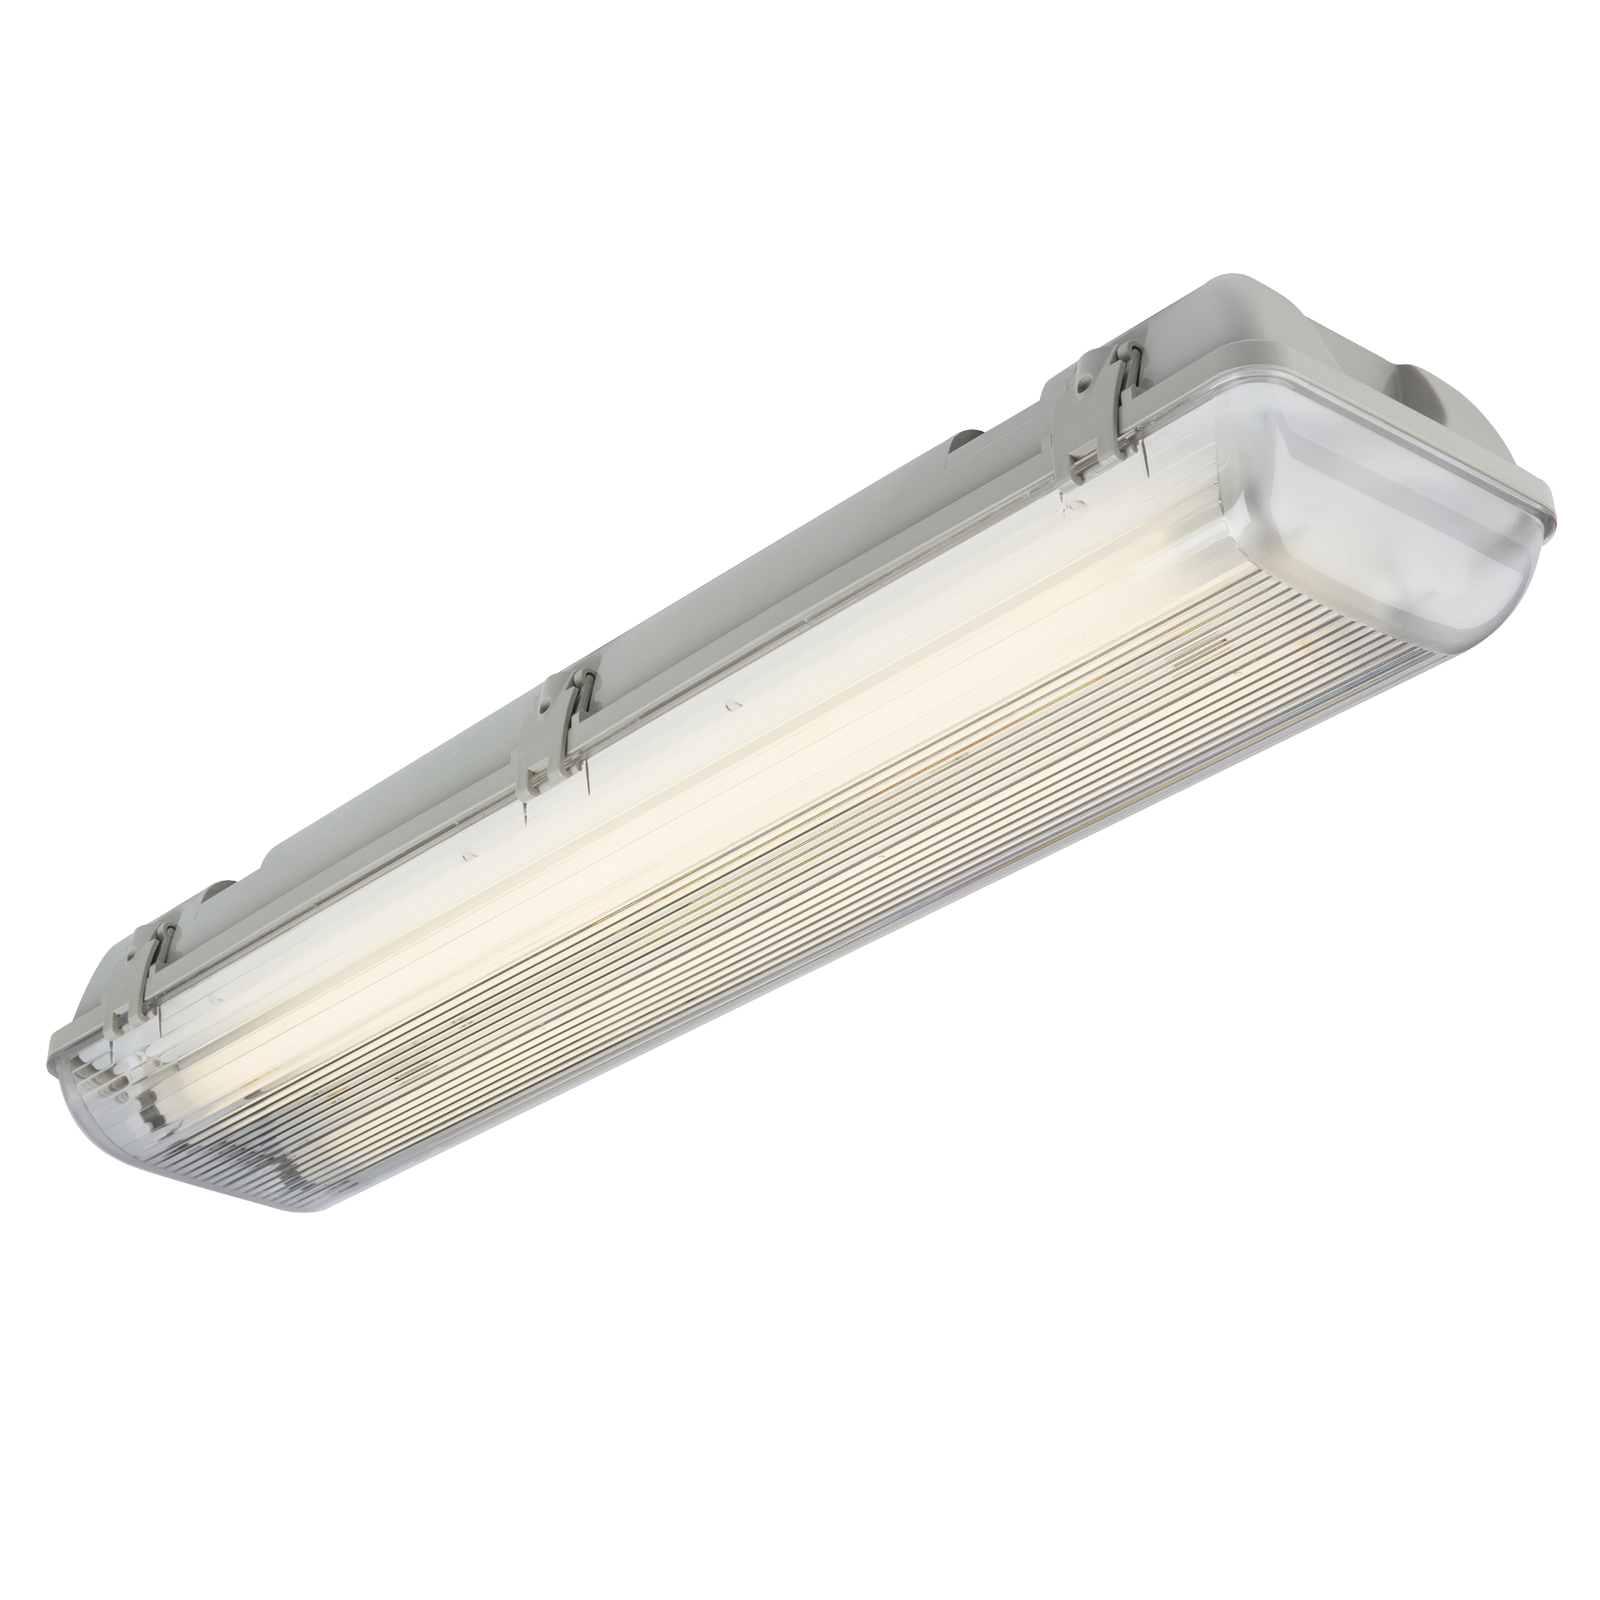 240V IP65 2x58W HF Twin Non-Corrosive Emergency Fluorescent Fitting